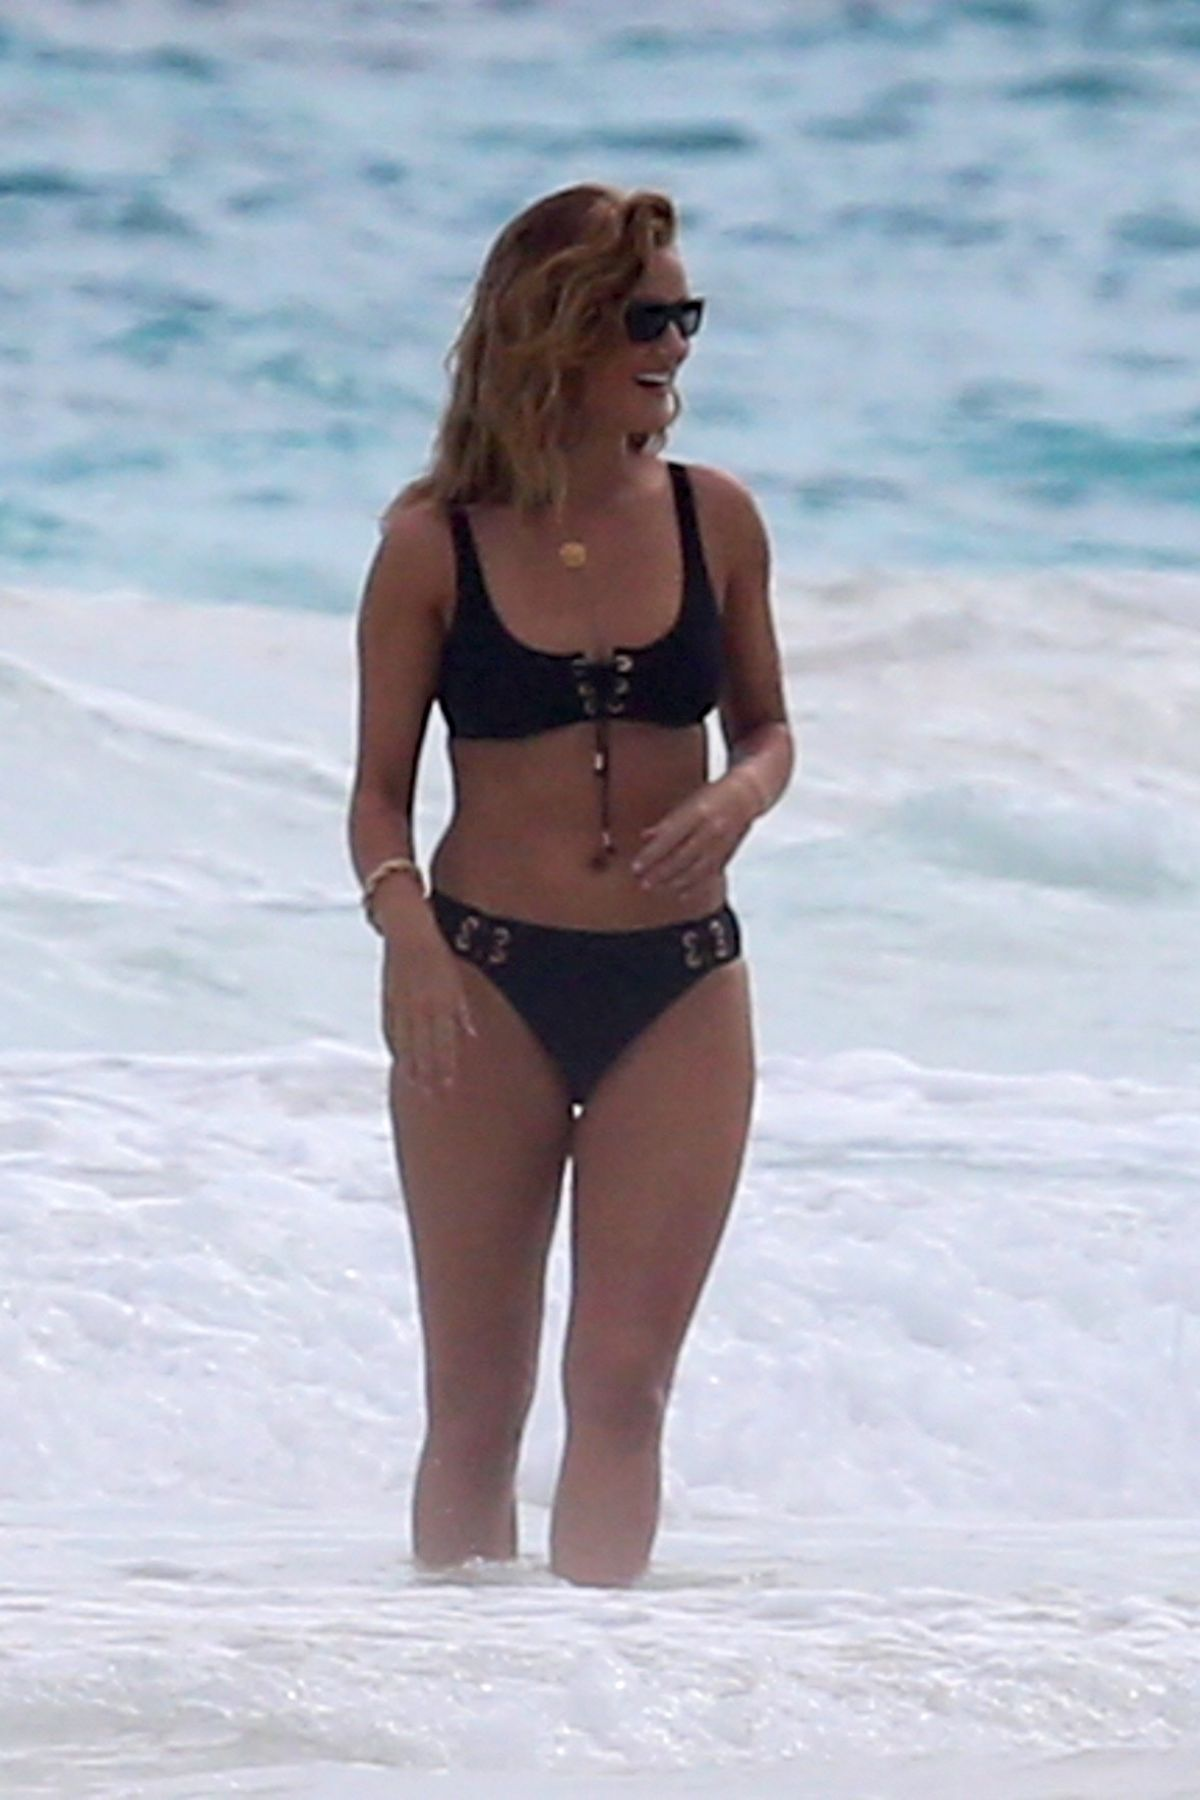 Rosie Huntington Whiteley Bikini Photoshoot at a Beach in the Bahamas Pic 8 of 35